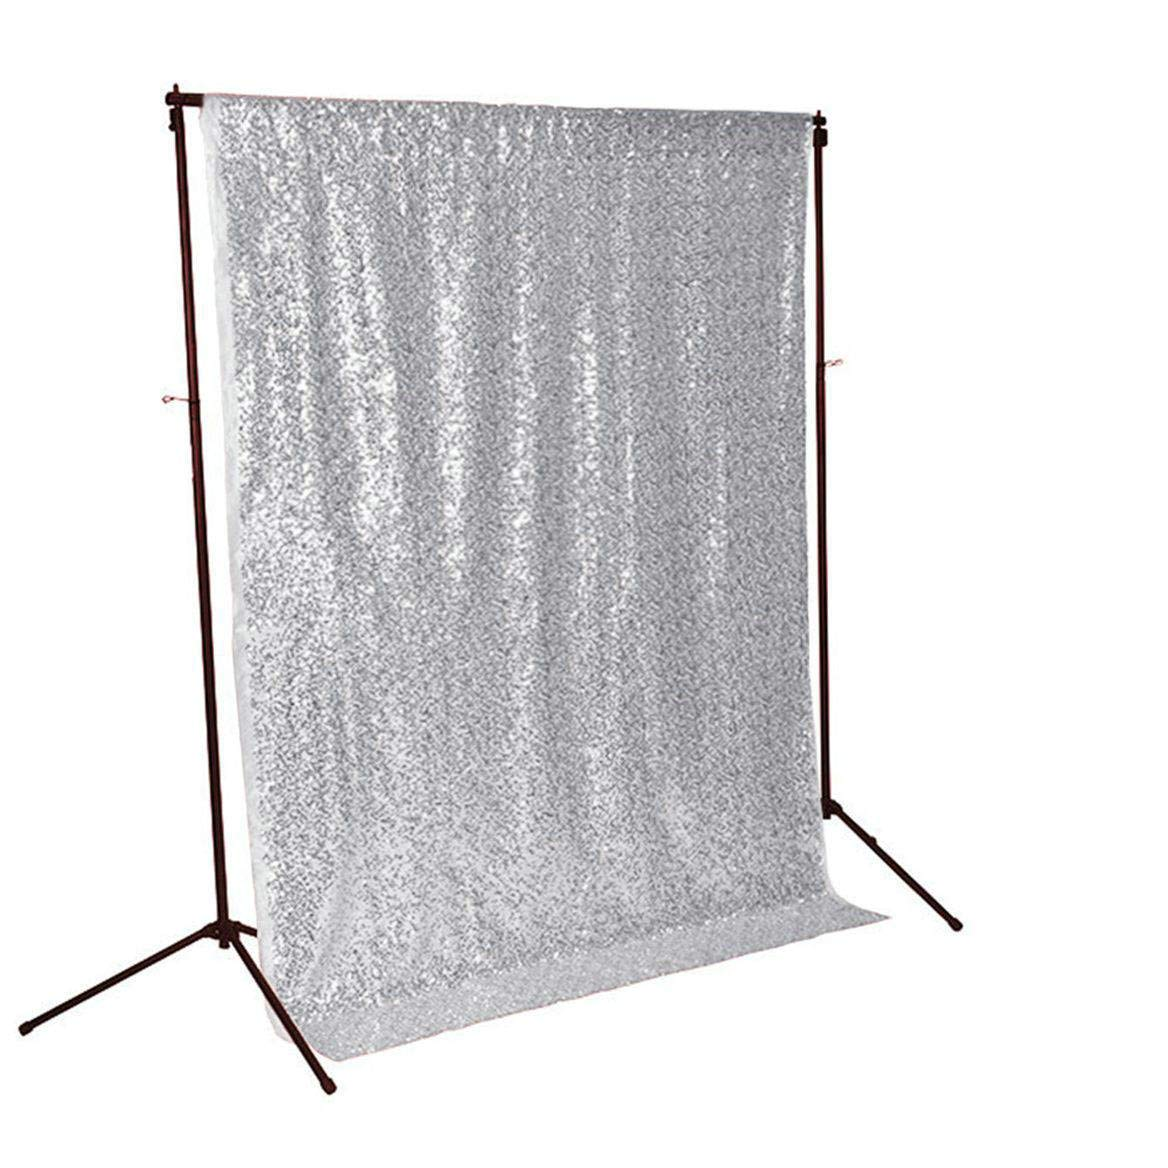 Sequin BACKDROP-CURTAIN-8FTx8FT Silver Sequin Photo Backdrop,Photo Booth Background,Sequence Christmas Backdrop Curtain